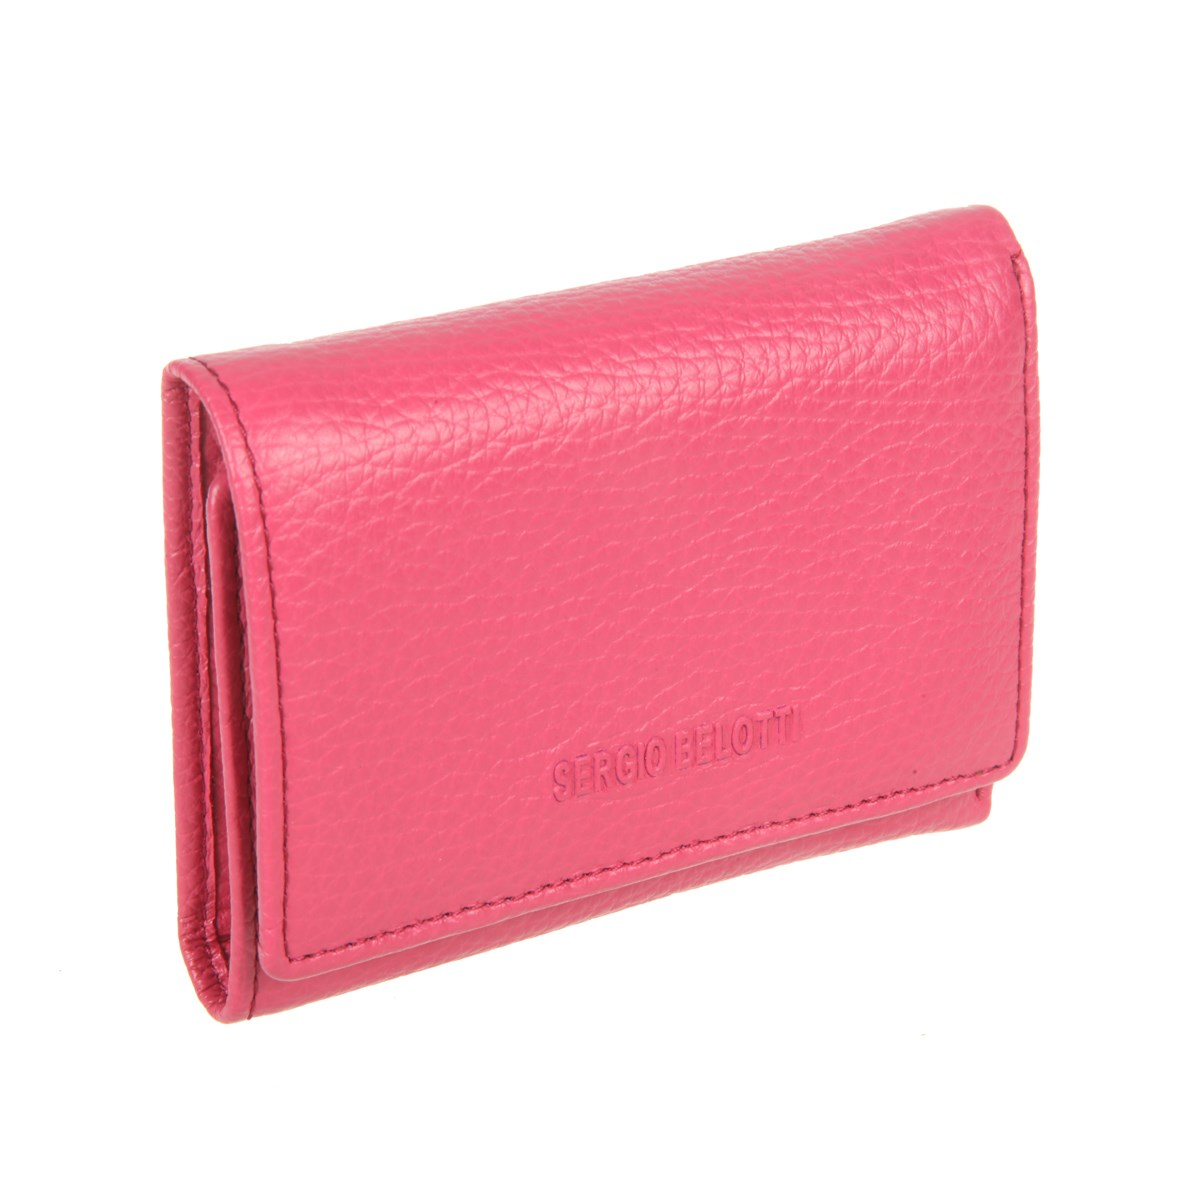 цена Coin Purse Sergio Belotti 3118 Livorno pink онлайн в 2017 году